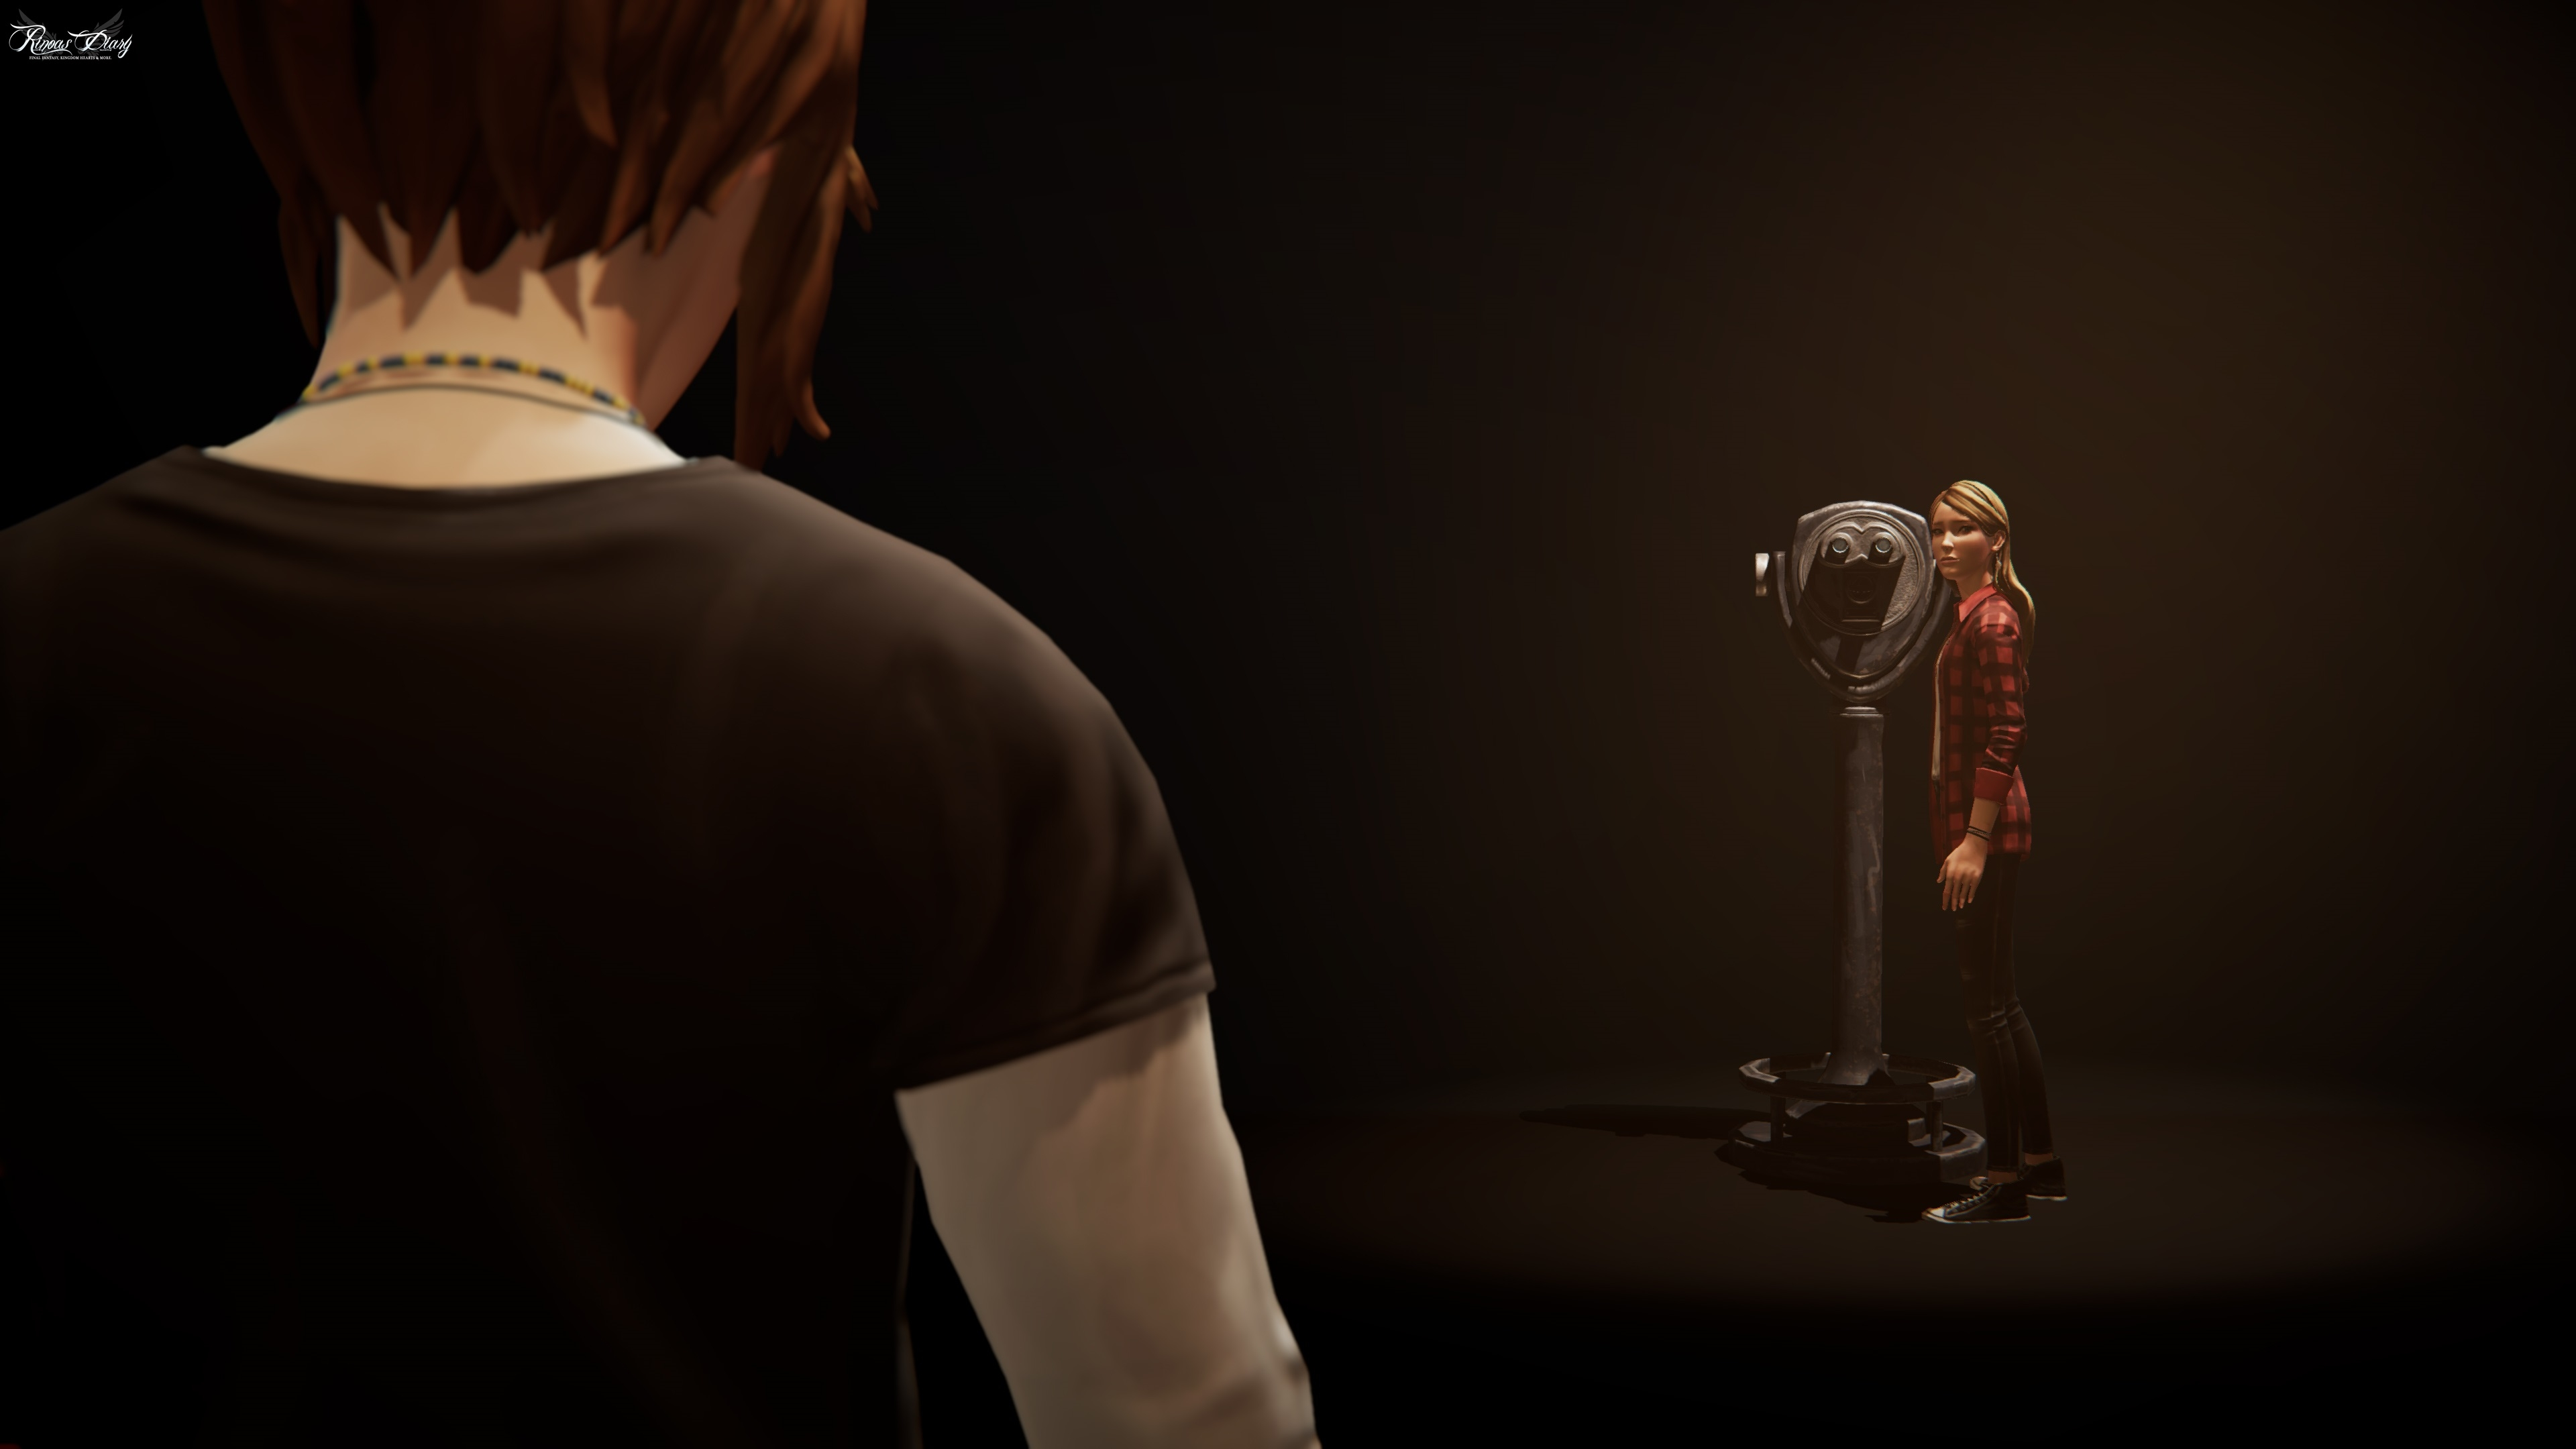 lis-bts-ep3-preview-02